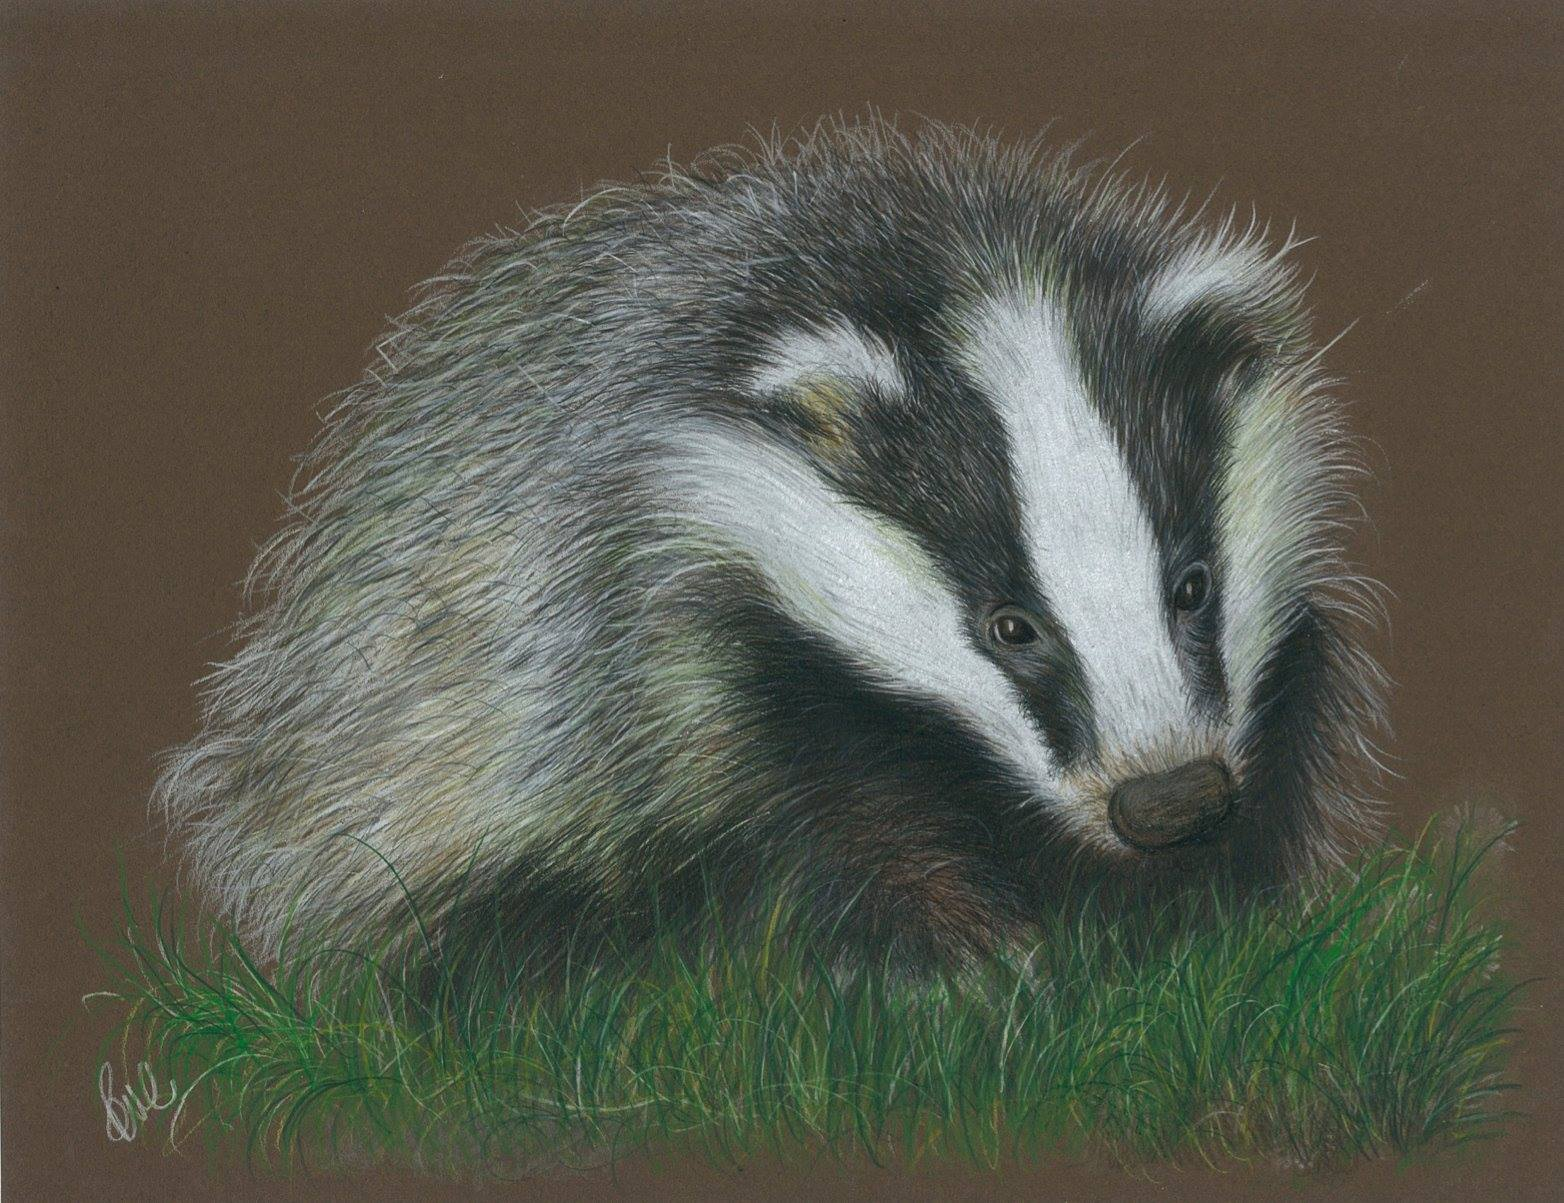 Boris the Badger - Paul Caton